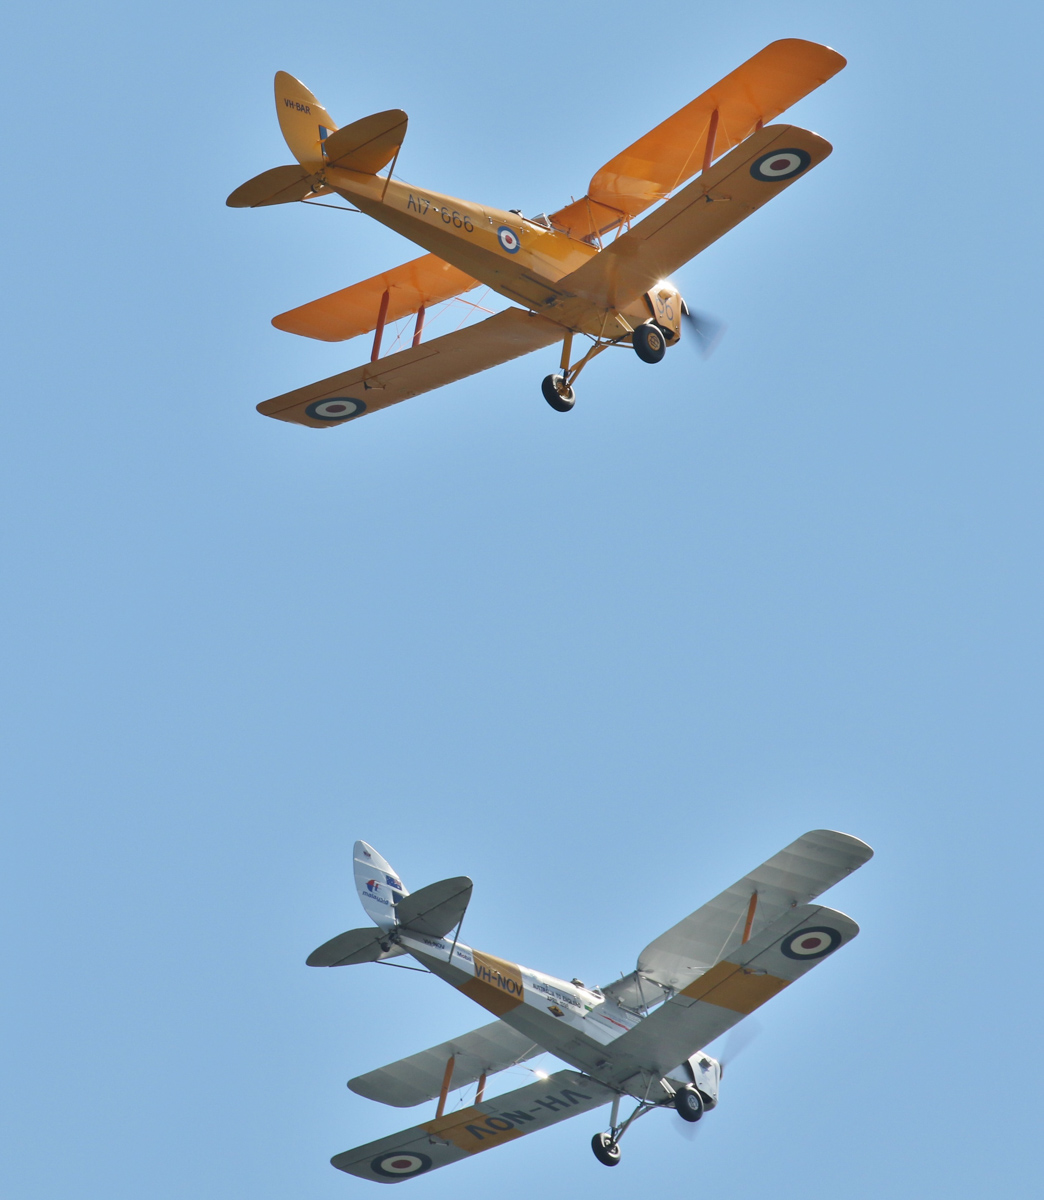 De Havilland DH-82A Tiger Moths VH-BAR/A17-666 (MSN DHA816/T342) flown by Kevin Bailey; and VH-NOV (MSN DHA1088) flown by Barry Markham - over the Swan River, Perth - Tue 26 January 2016 - Australia Day City of Perth Air Show 2016. Seen from Langley Park, as part of the 'Beautiful Biplanes' formation. Photo © Geoff Selby